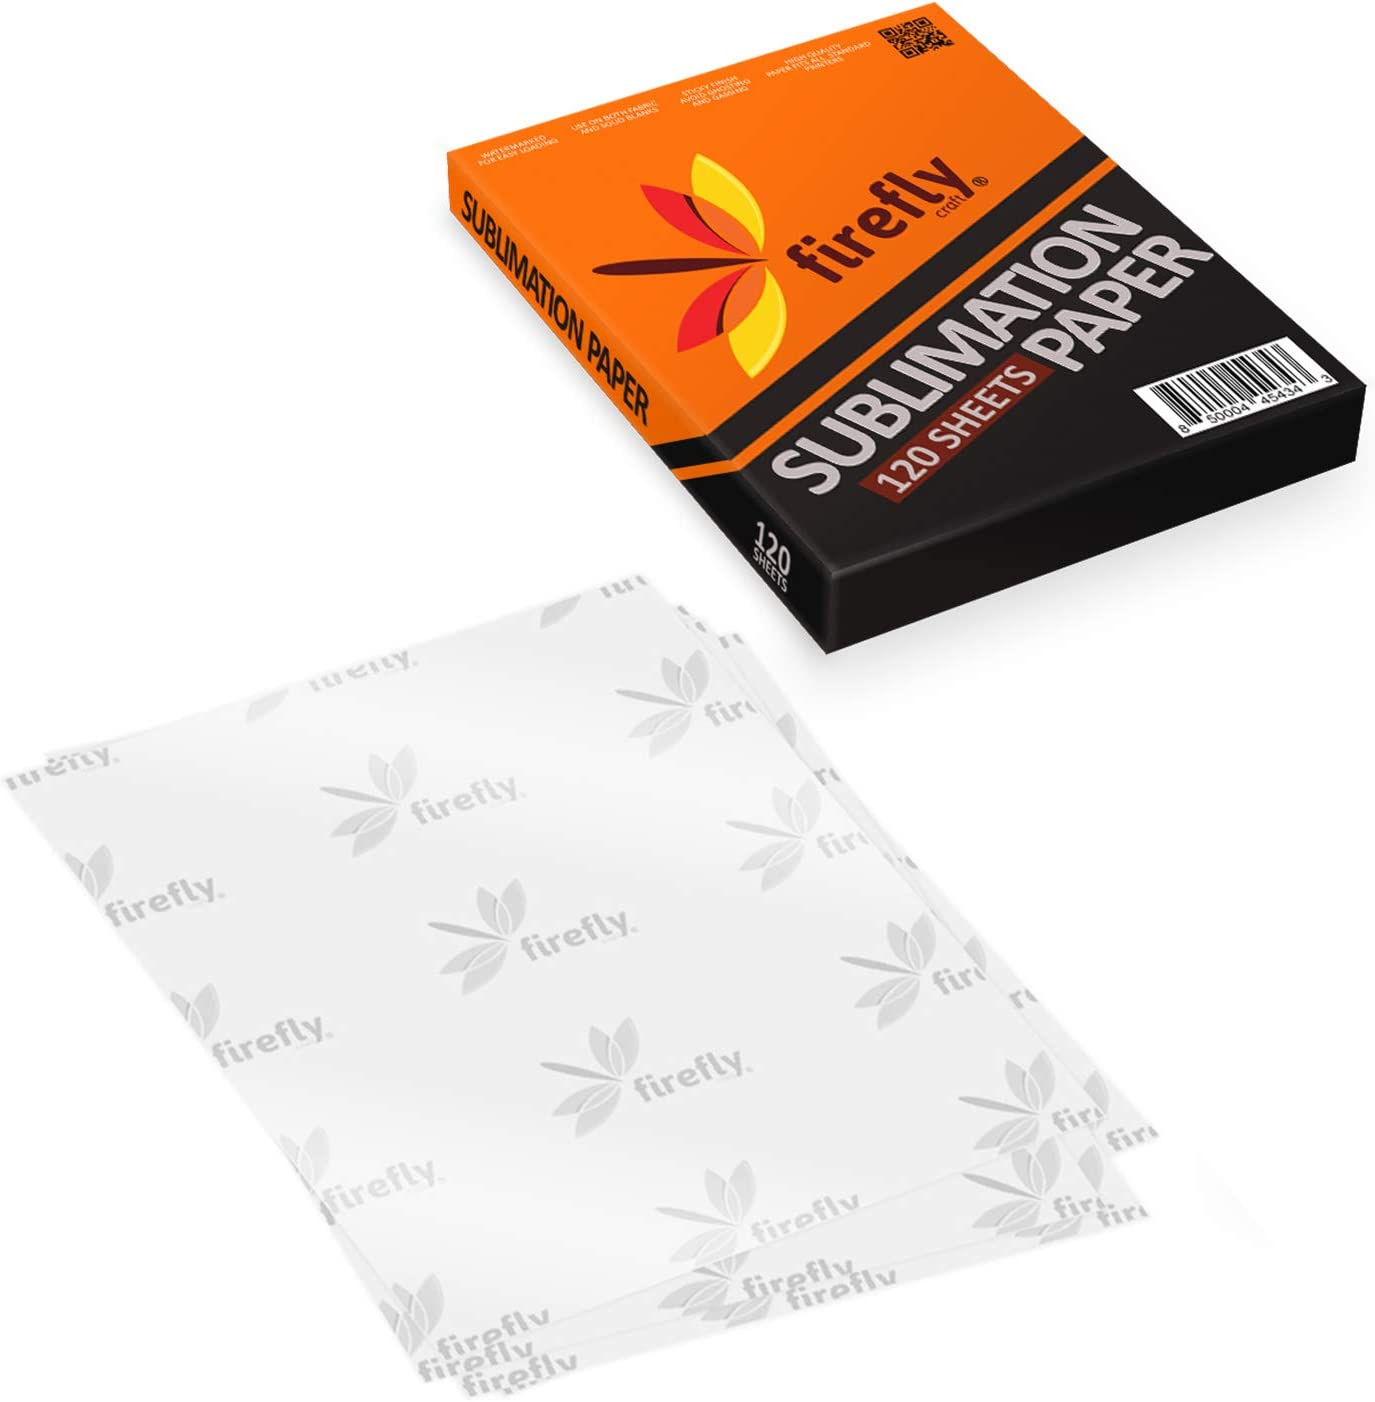 8.5 x 11 for Any Printer with Sublimation Ink 120 Sheets Firefly Craft Sublimation Paper Heat Transfer